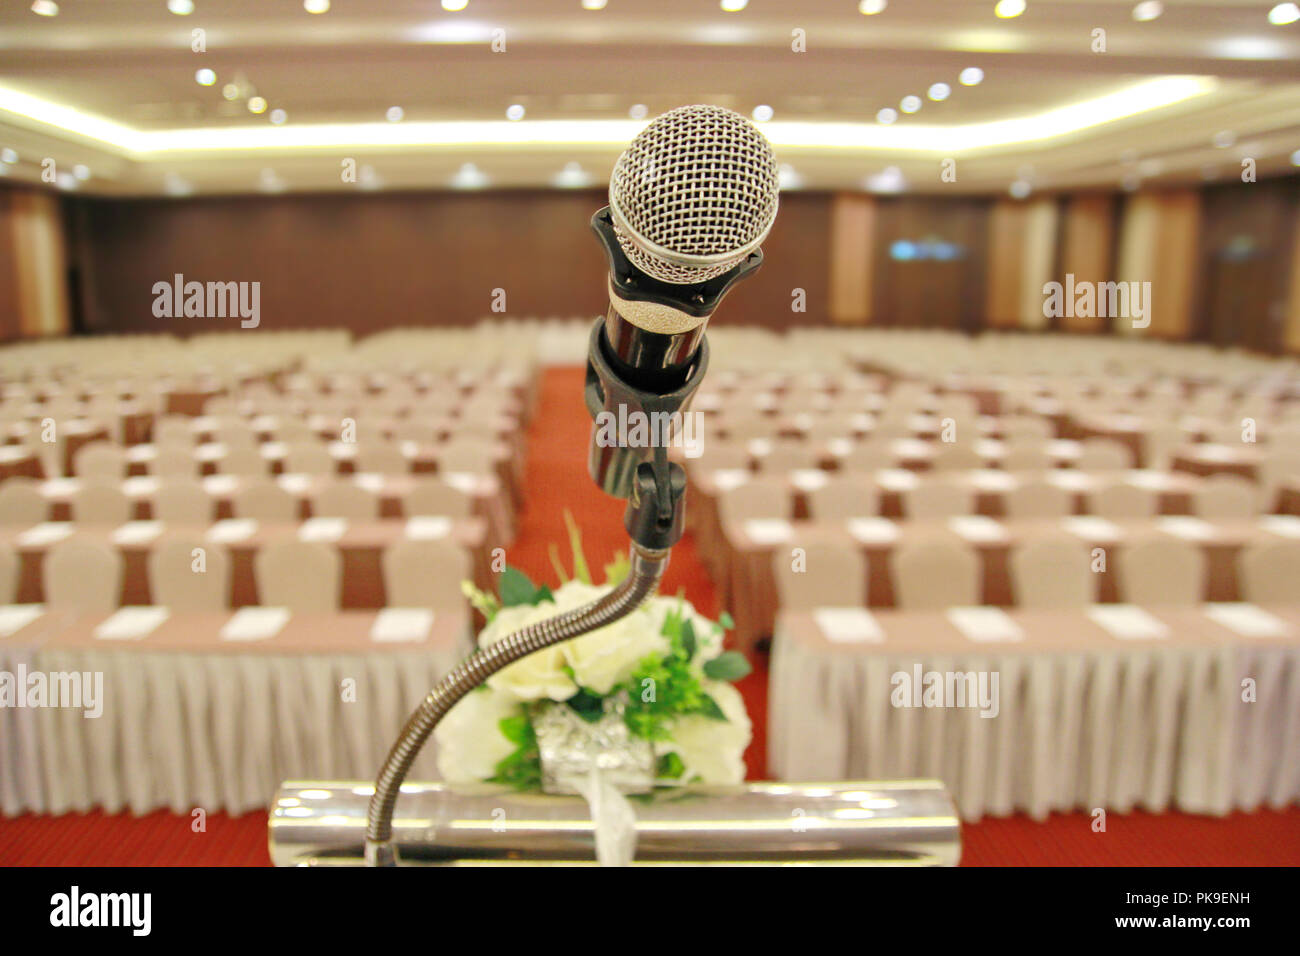 The microphone is located on podium stand at the center of the room is covered with a red carpet with a white tables cloth and chairs and prepare befo - Stock Image